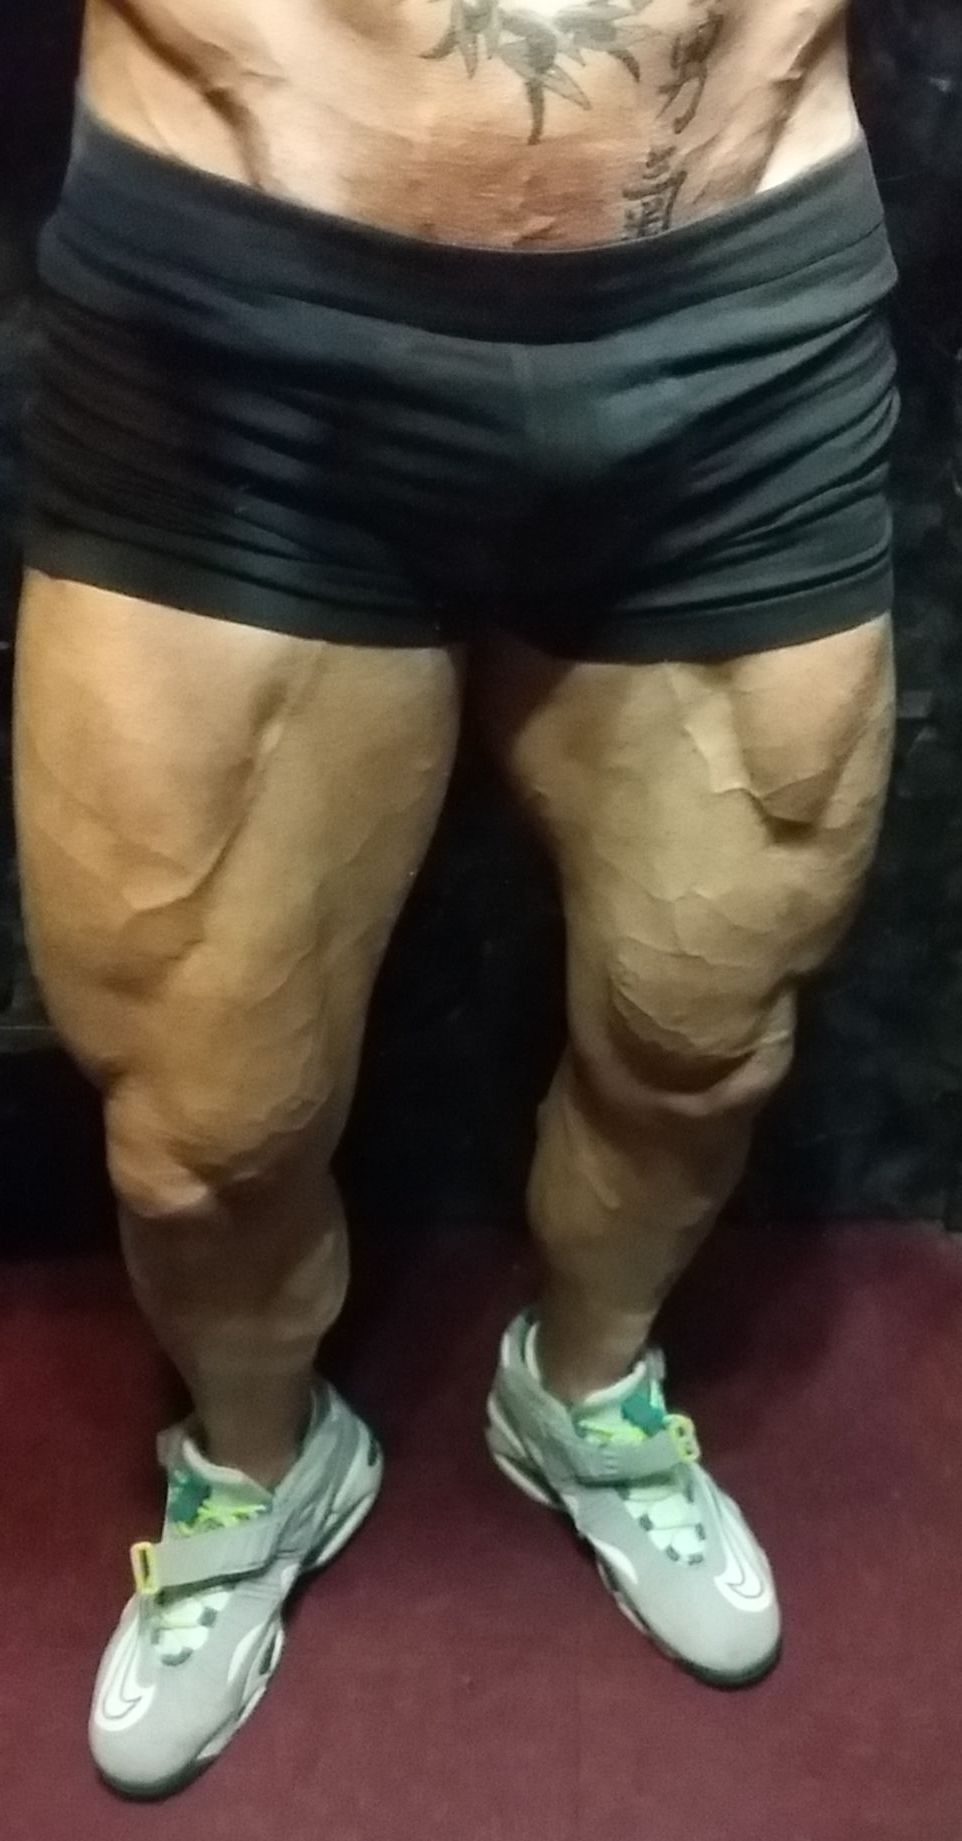 John Joseph Quinlan - Thighs & Calves Training Update via January 2015 #JohnQuinlan